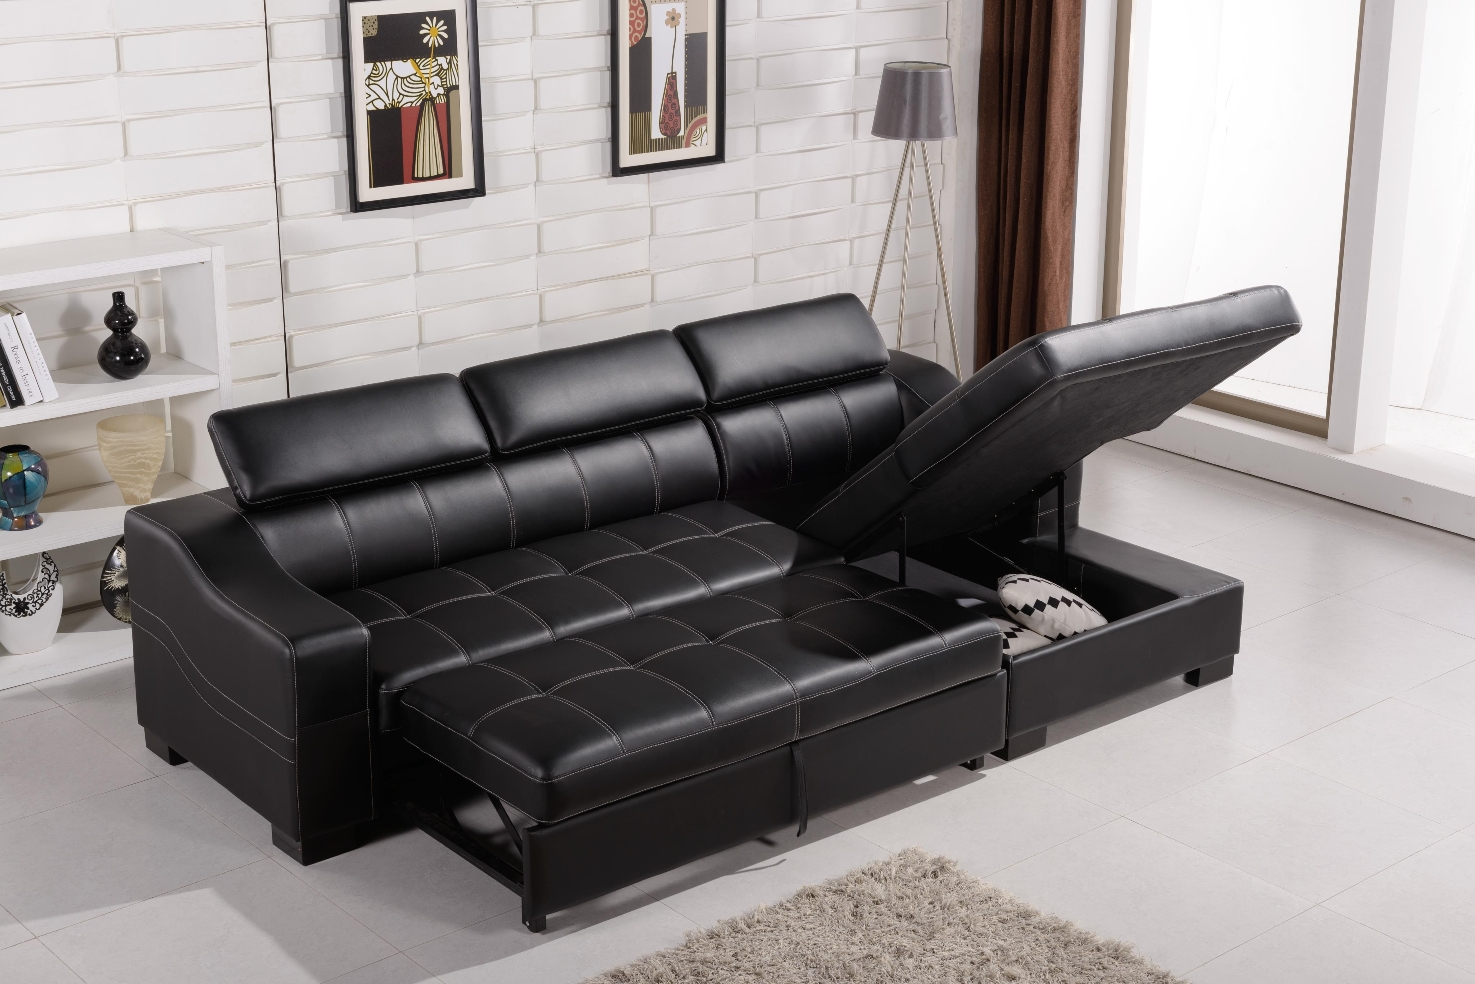 comfort sleepers sofa beds voyager lay flat triple reclining tips to consider when buying a sleeper -